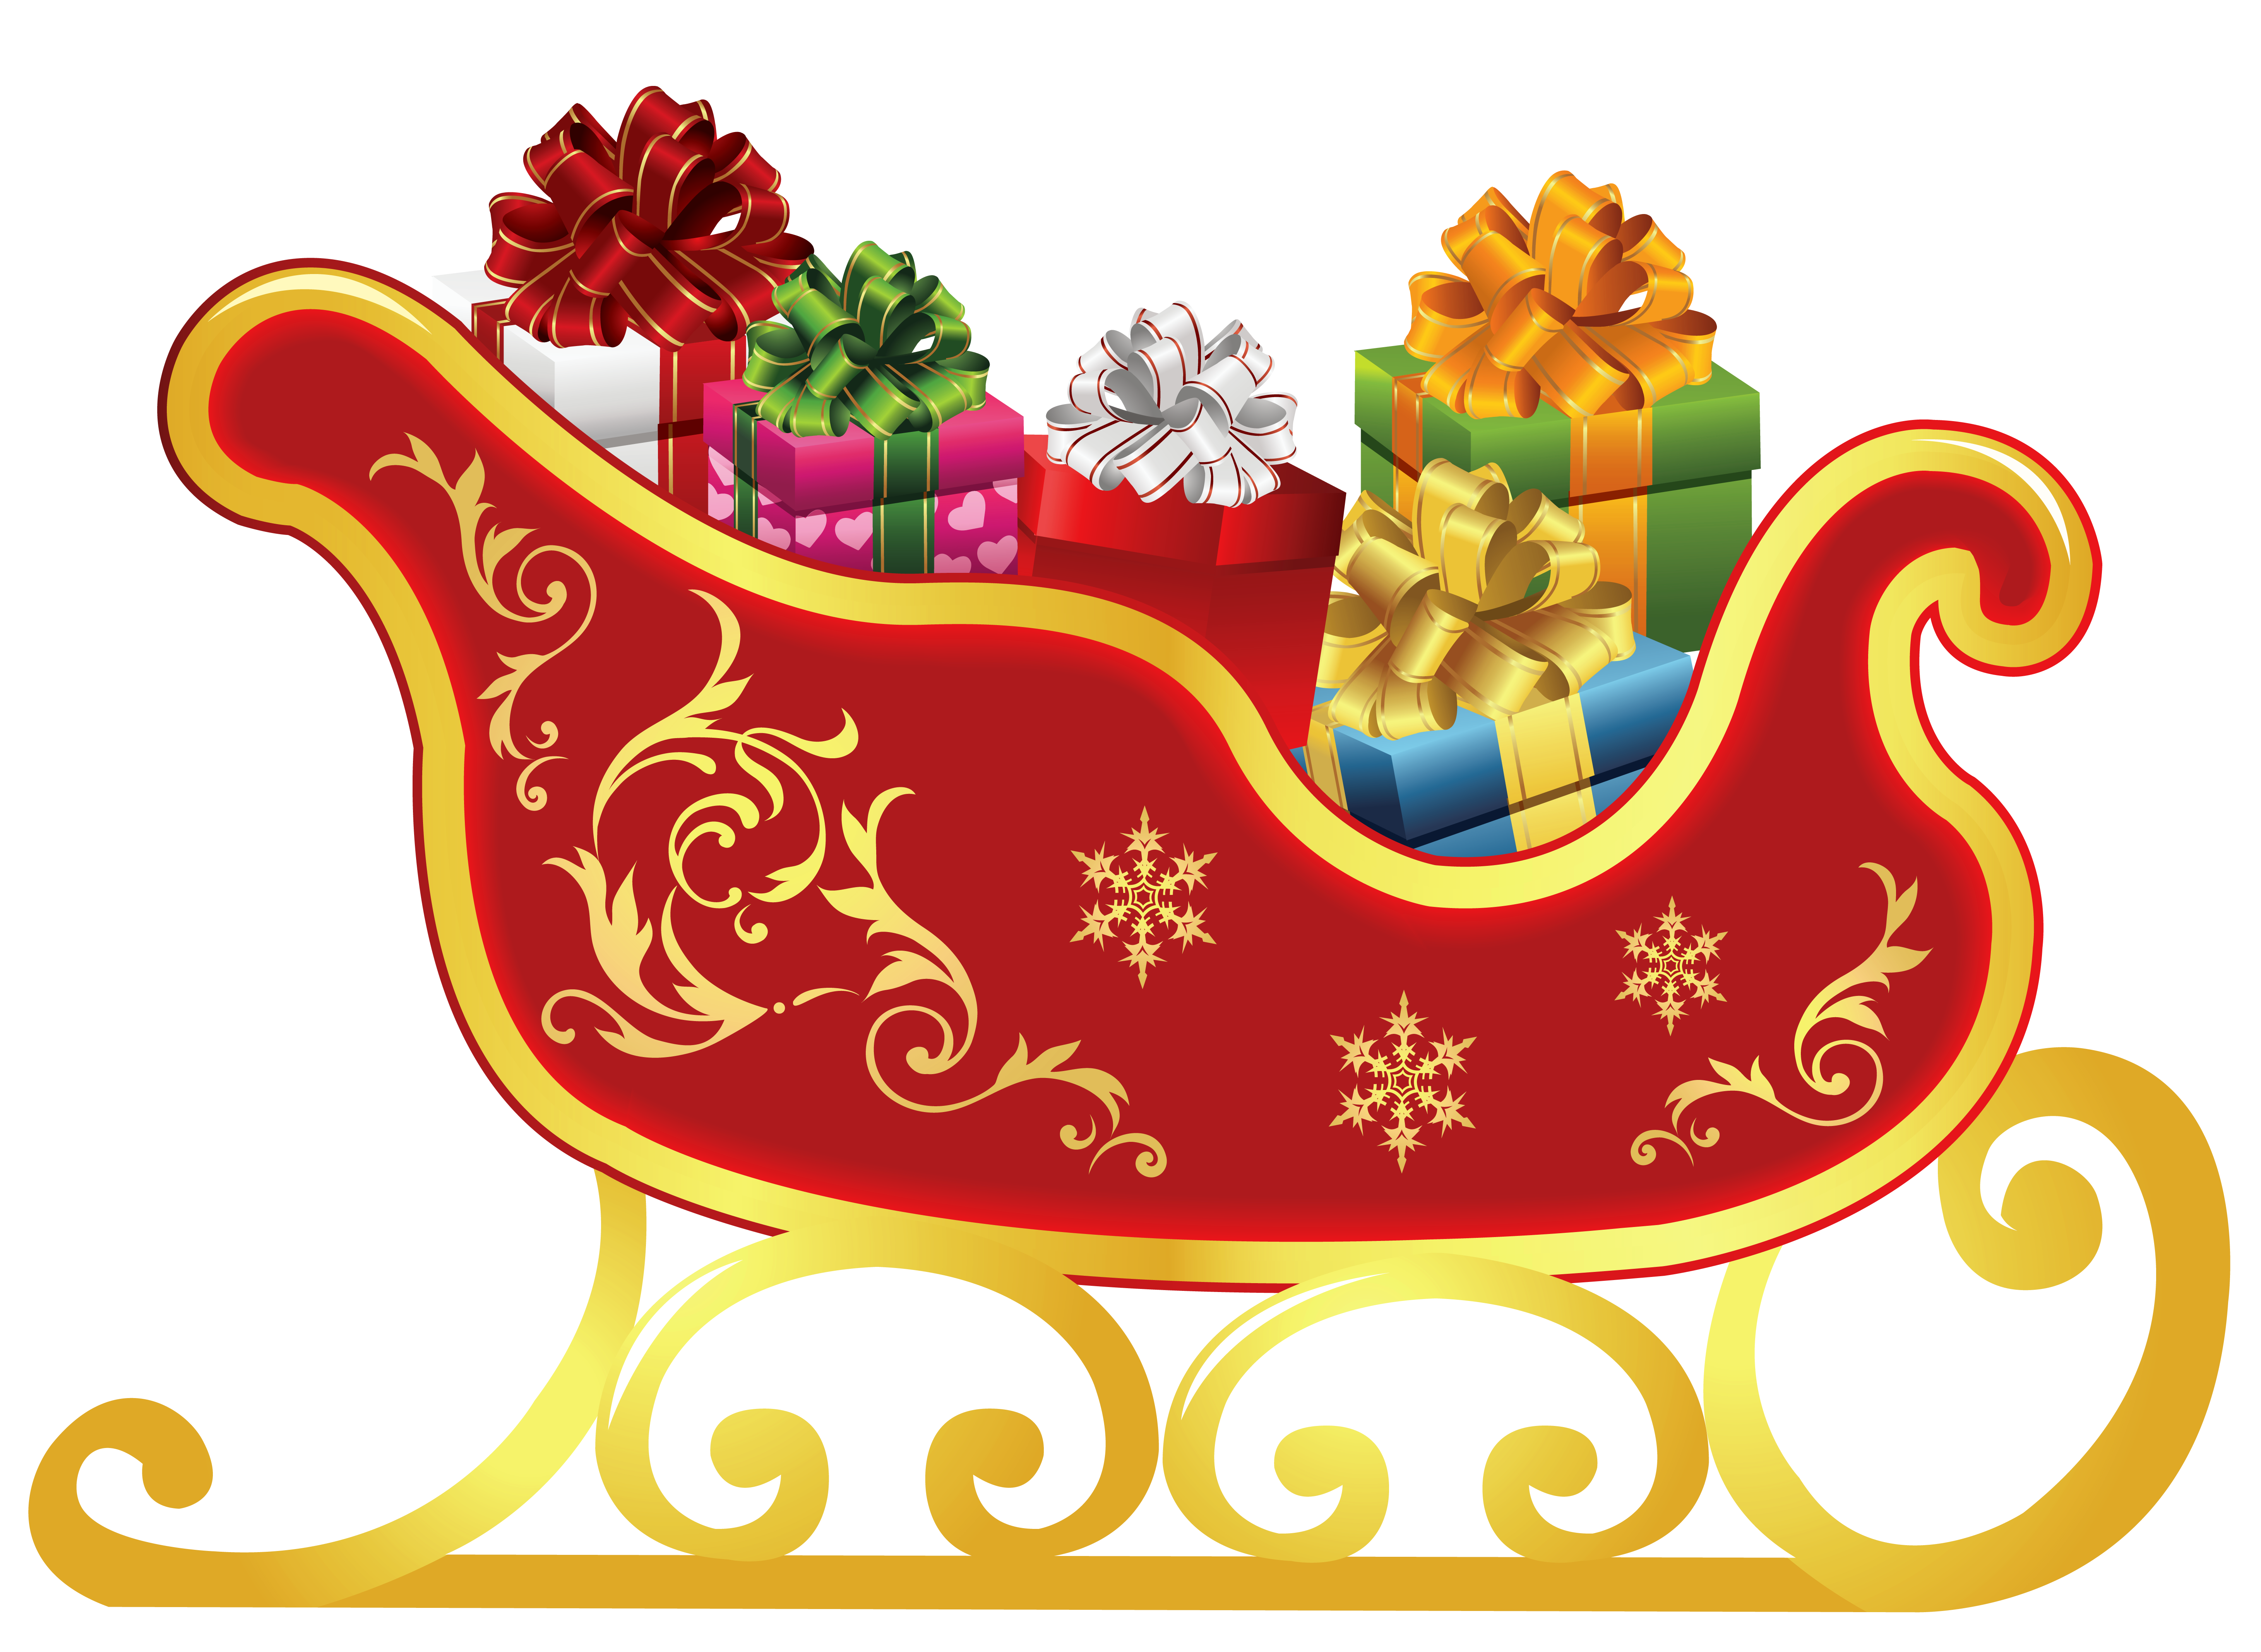 Sledding clipart transparent background. Christmas sled png gallery